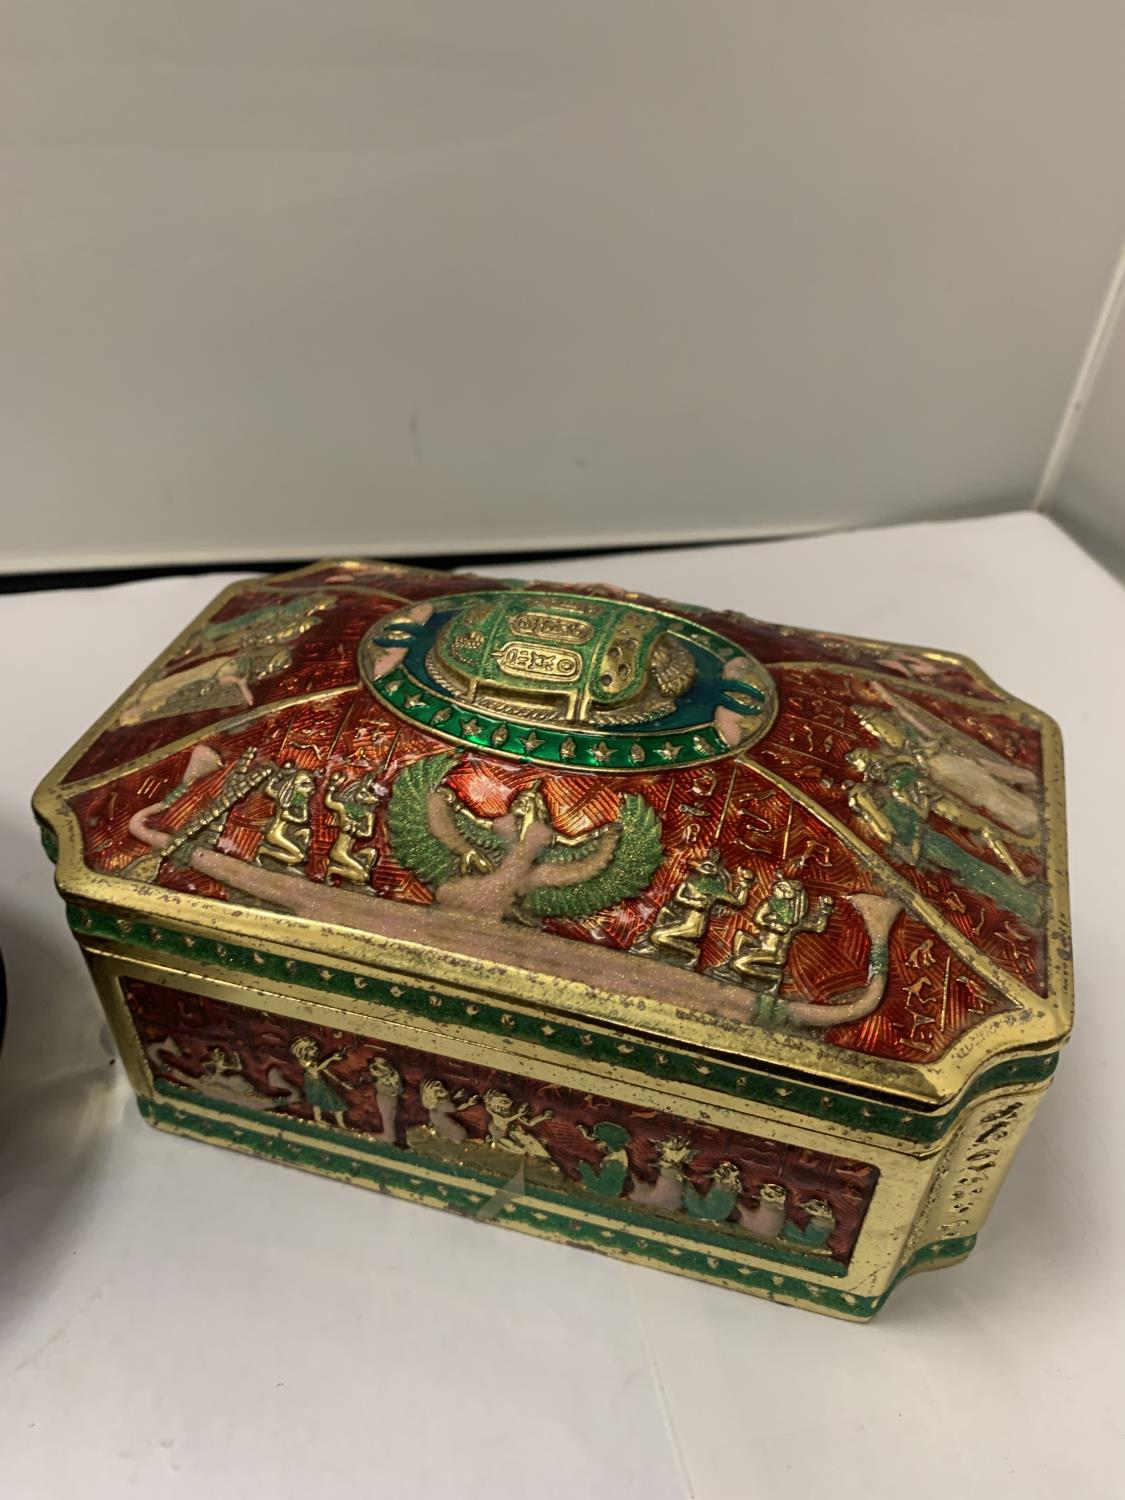 AN ORNATE LIDDED JEWELLERY BOX AND A FURTHER LIDDED TRINKET BOWL - Image 2 of 3